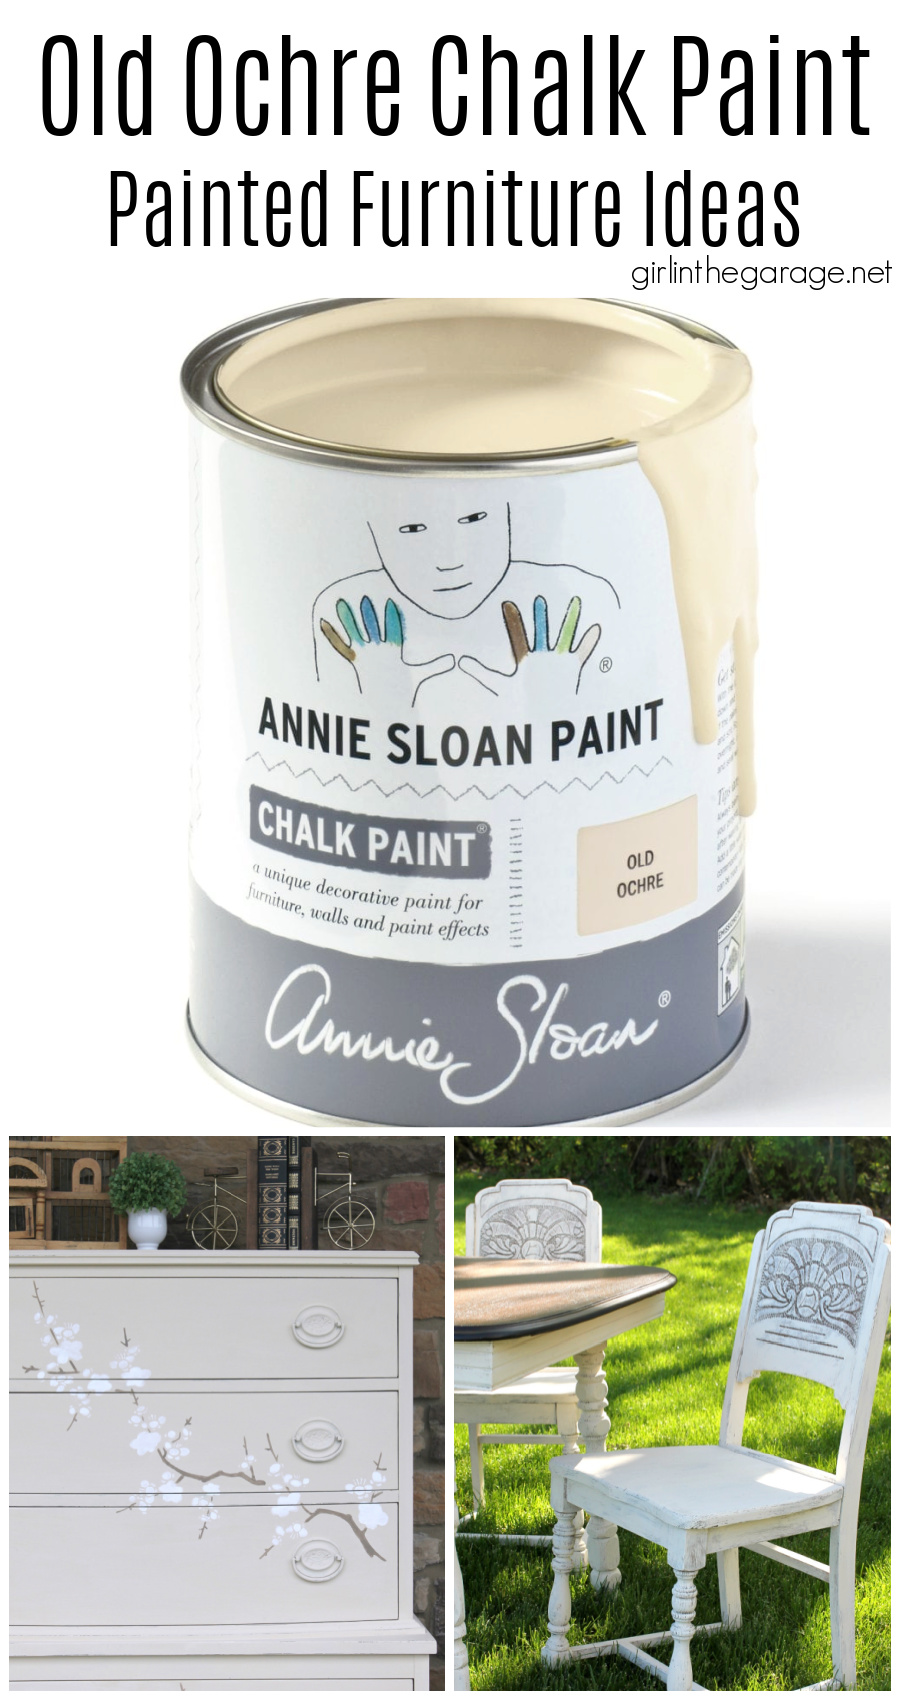 Beautiful painted furniture ideas in Old Ochre Chalk Paint by Annie Sloan. Dressers, vanities, cabinets, and more. By Girl in the Garage